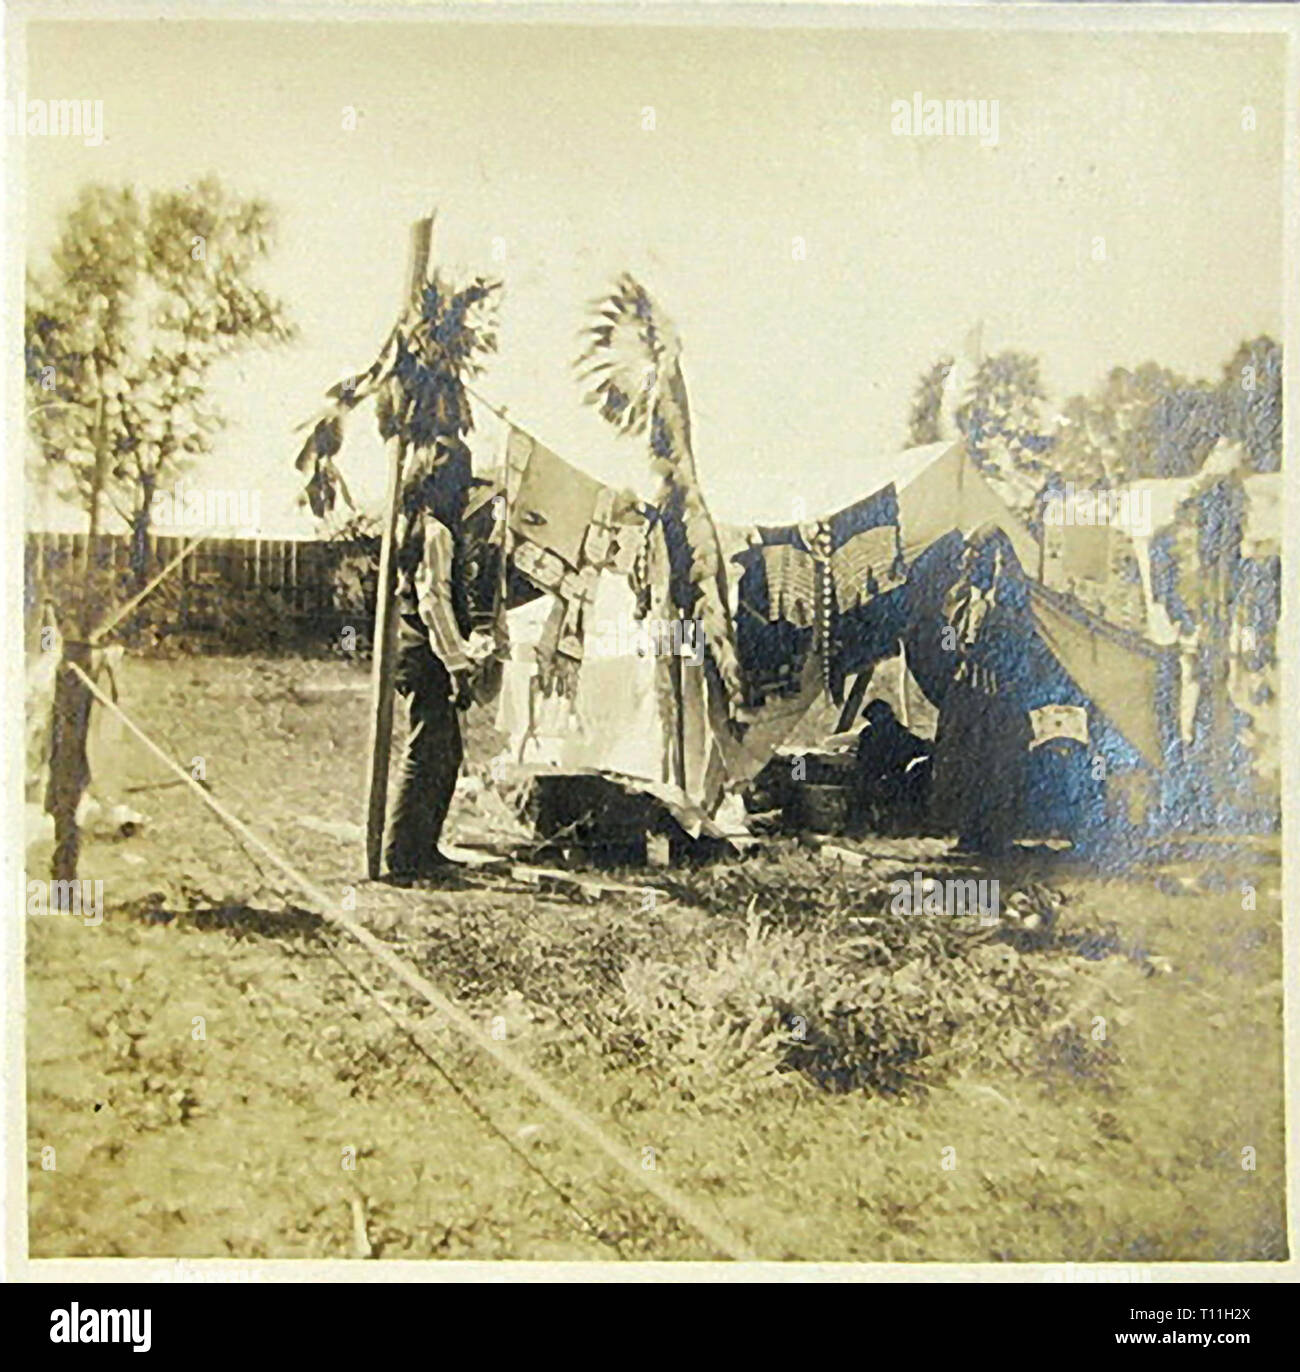 Photos of early America-Native American Indians. - Stock Image